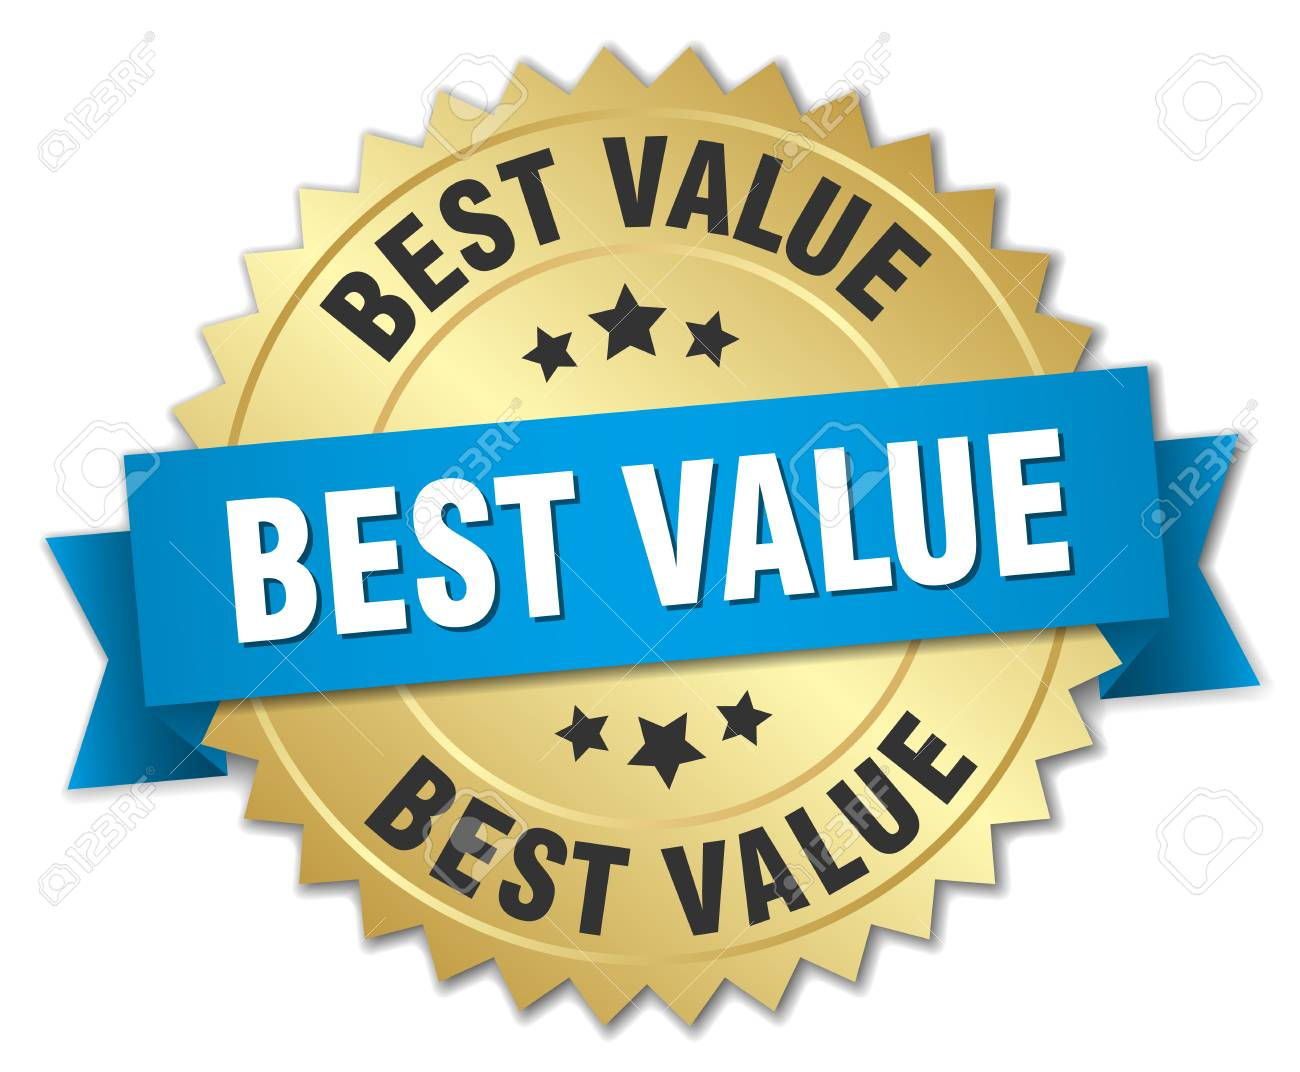 best value 3d gold badge with blue ribbon - 44493553